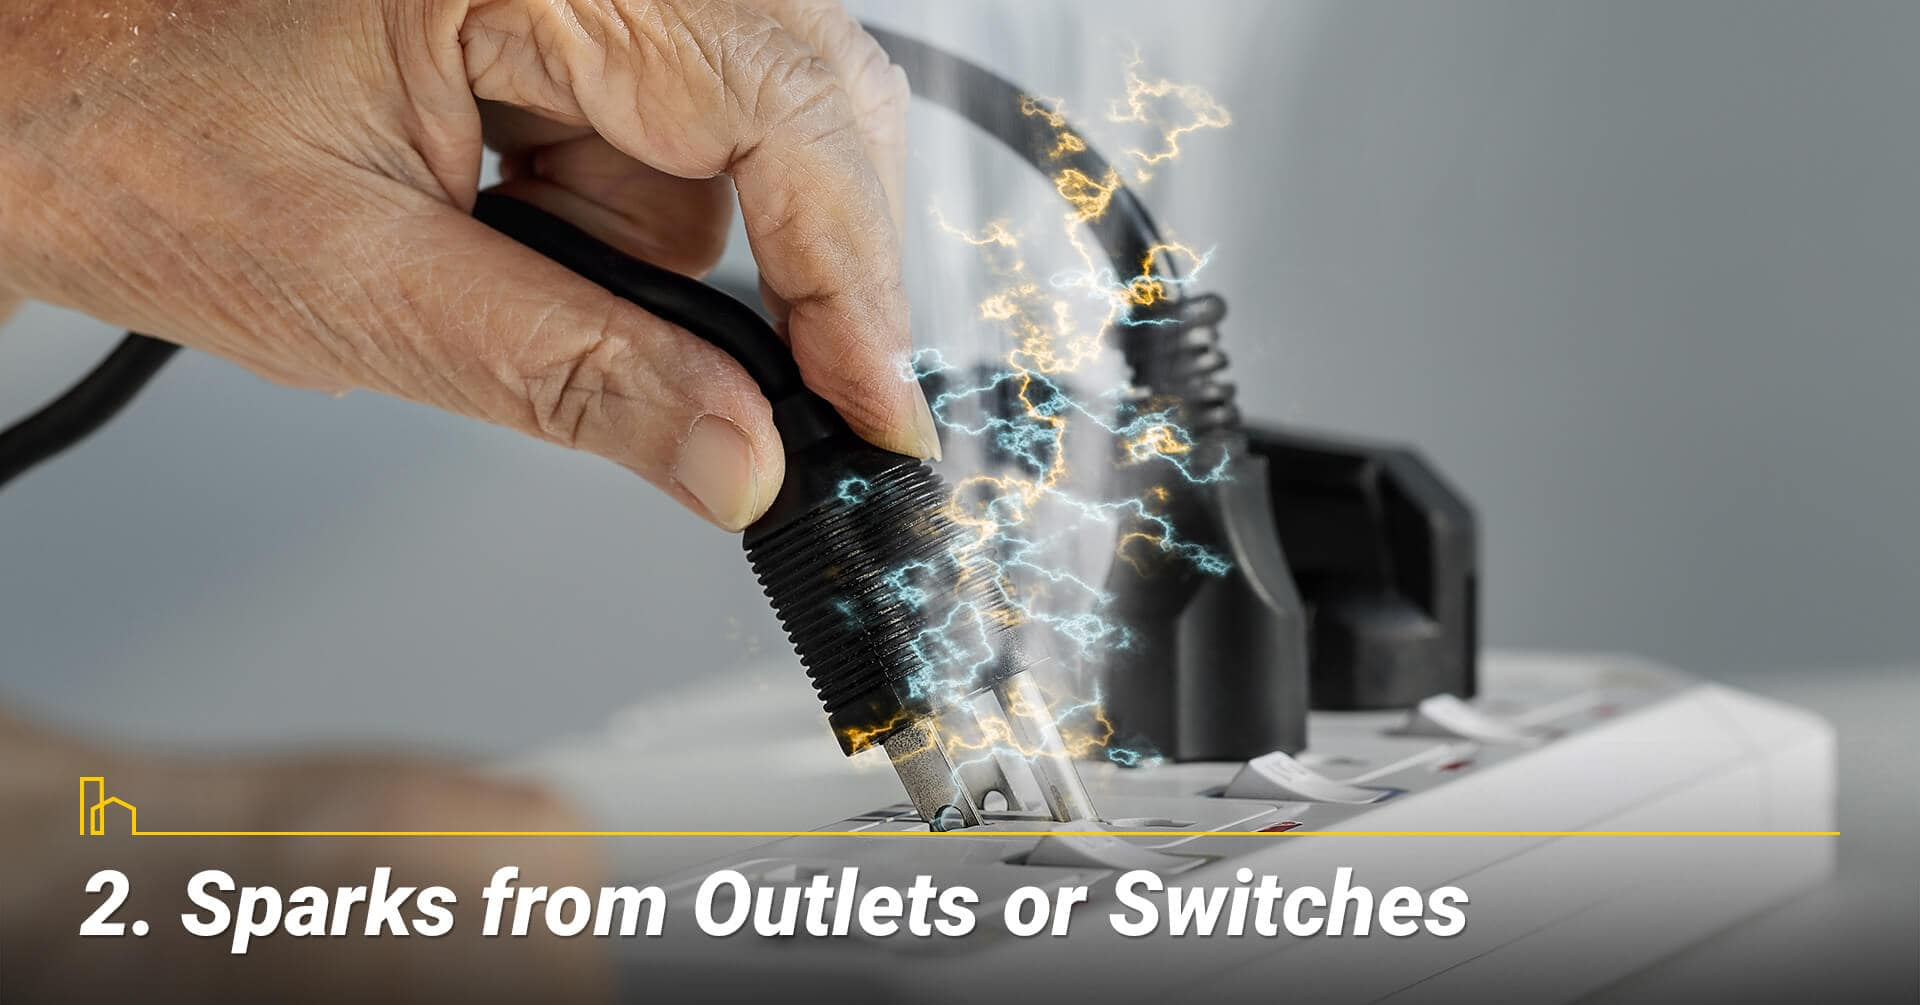 Sparks from Outlets or Switches